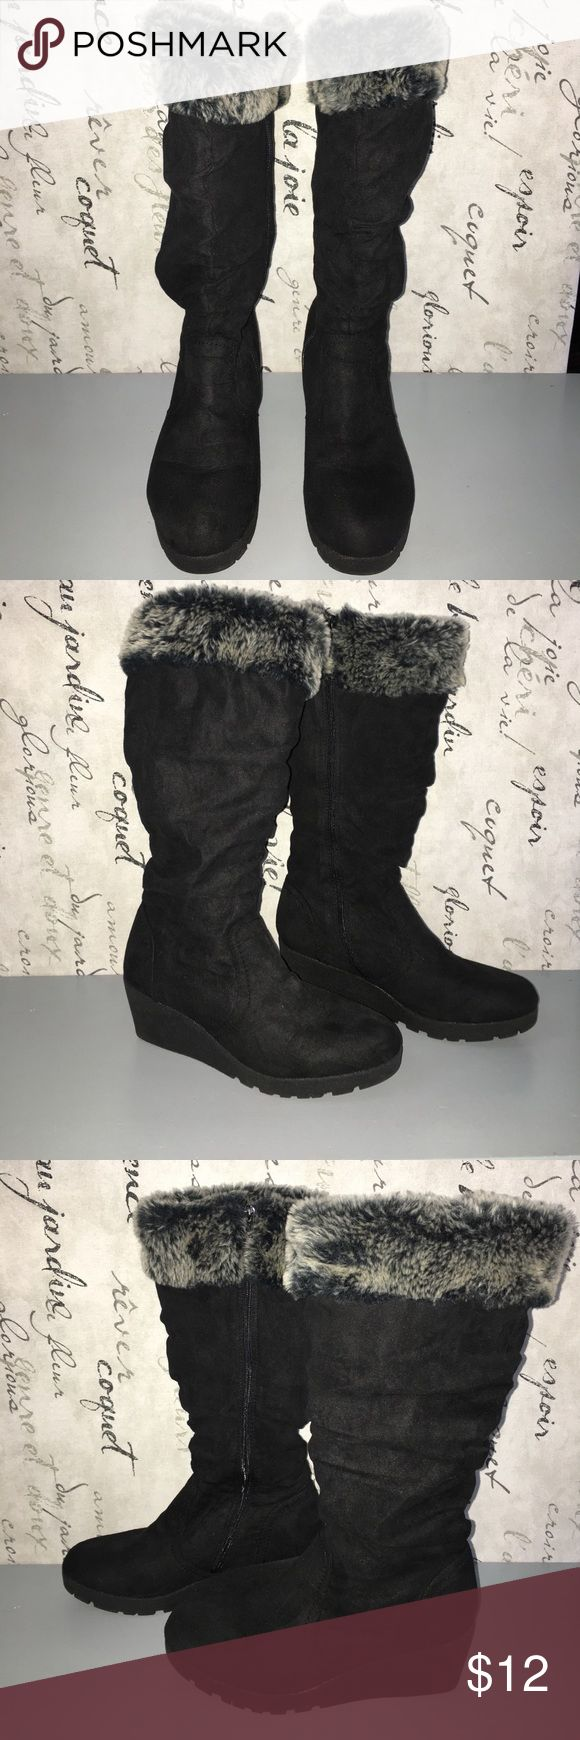 Faded Glory fur topped black suede wedge boots Faded Glory fur topped black suede wedge boots size 10. Gently used and in good condition. Faded Glory Shoes Winter & Rain Boots